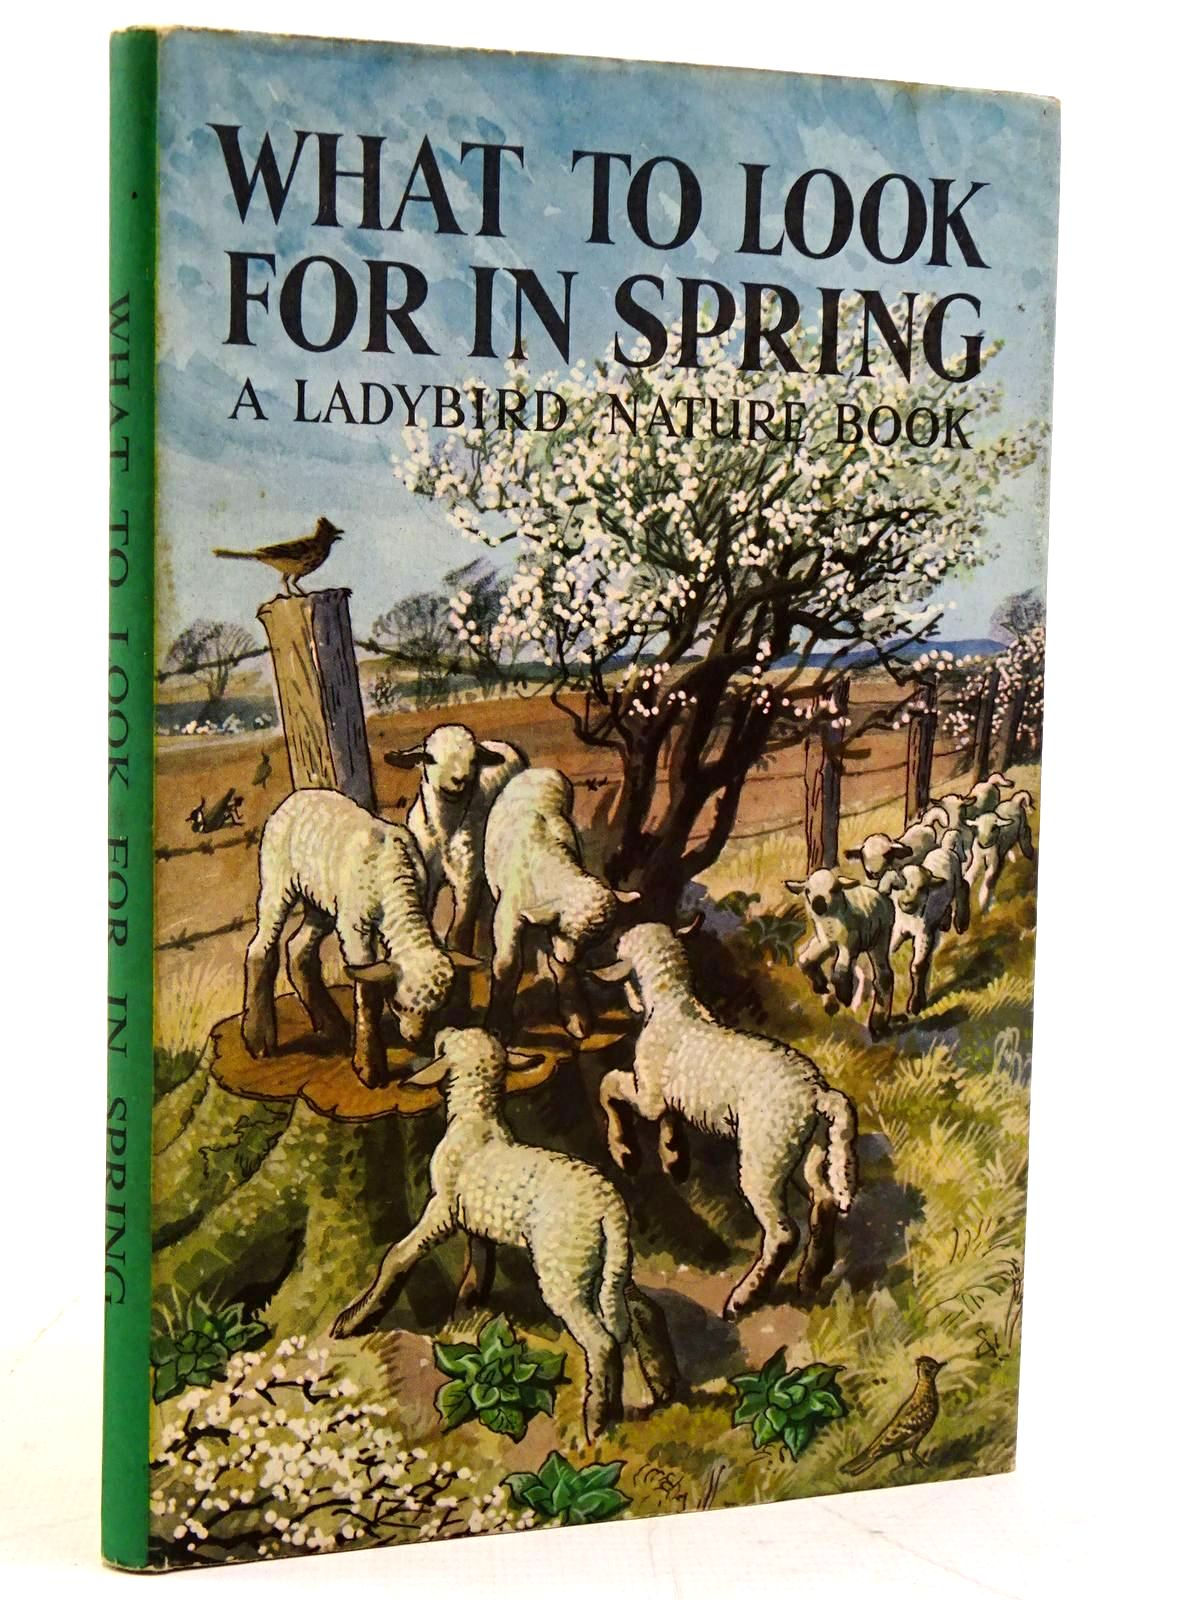 Photo of WHAT TO LOOK FOR IN SPRING written by Watson, E.L. Grant illustrated by Tunnicliffe, C.F. published by Wills & Hepworth Ltd. (STOCK CODE: 2131166)  for sale by Stella & Rose's Books